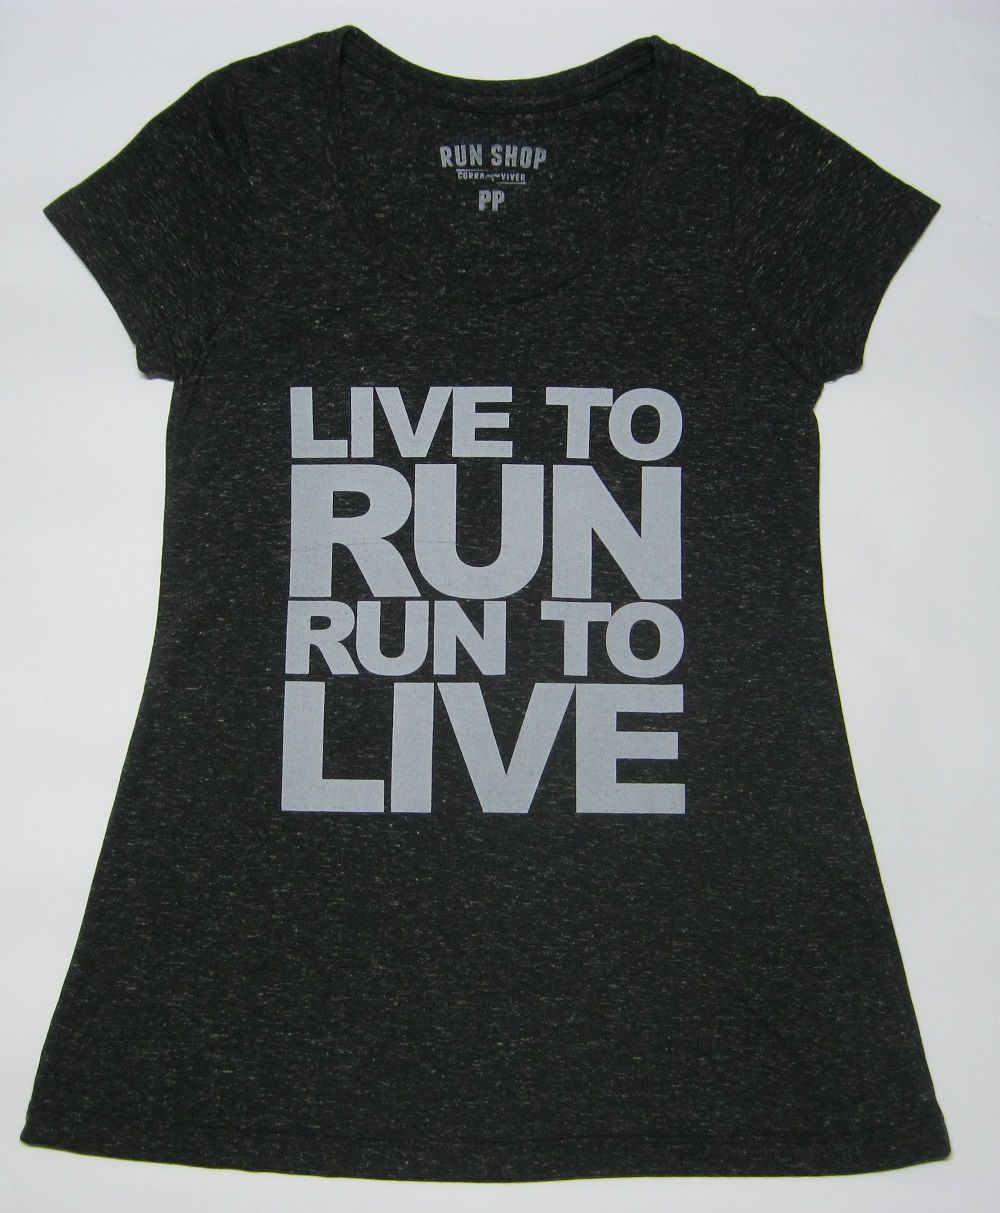 Camisas RUN SHOP - Live to run. Run to live - Feminina